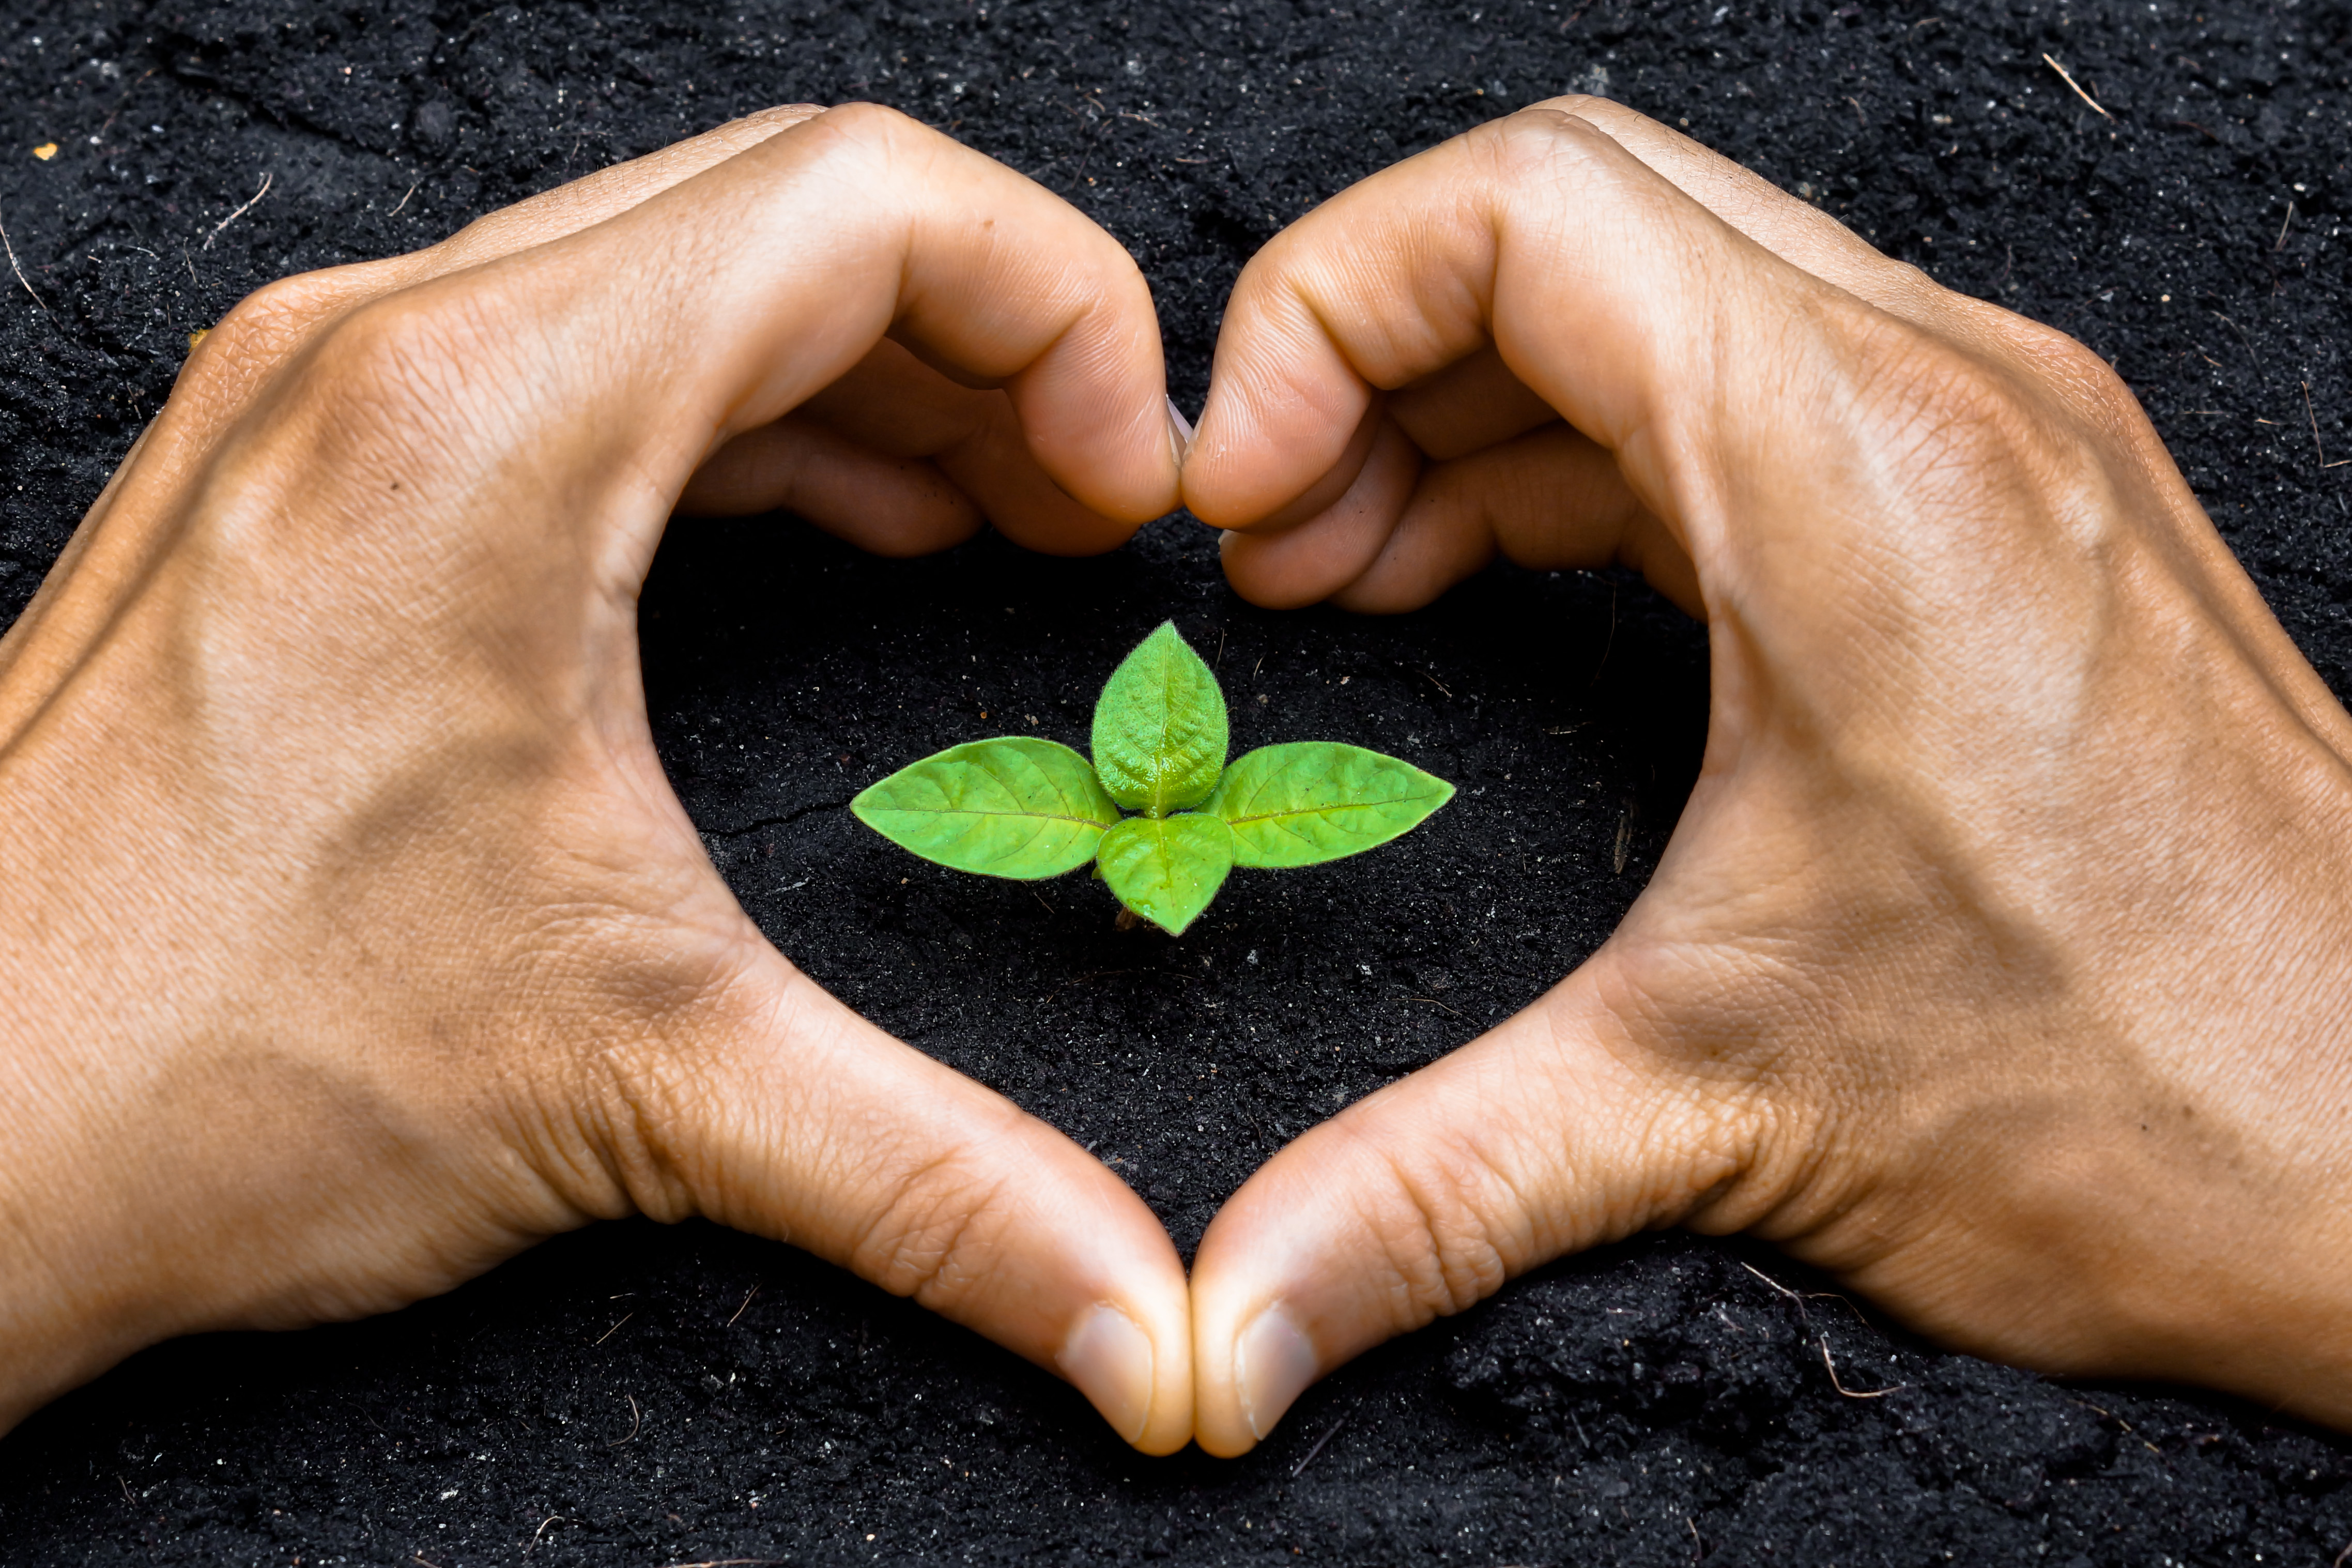 Hands in the shape of a heart around sprout